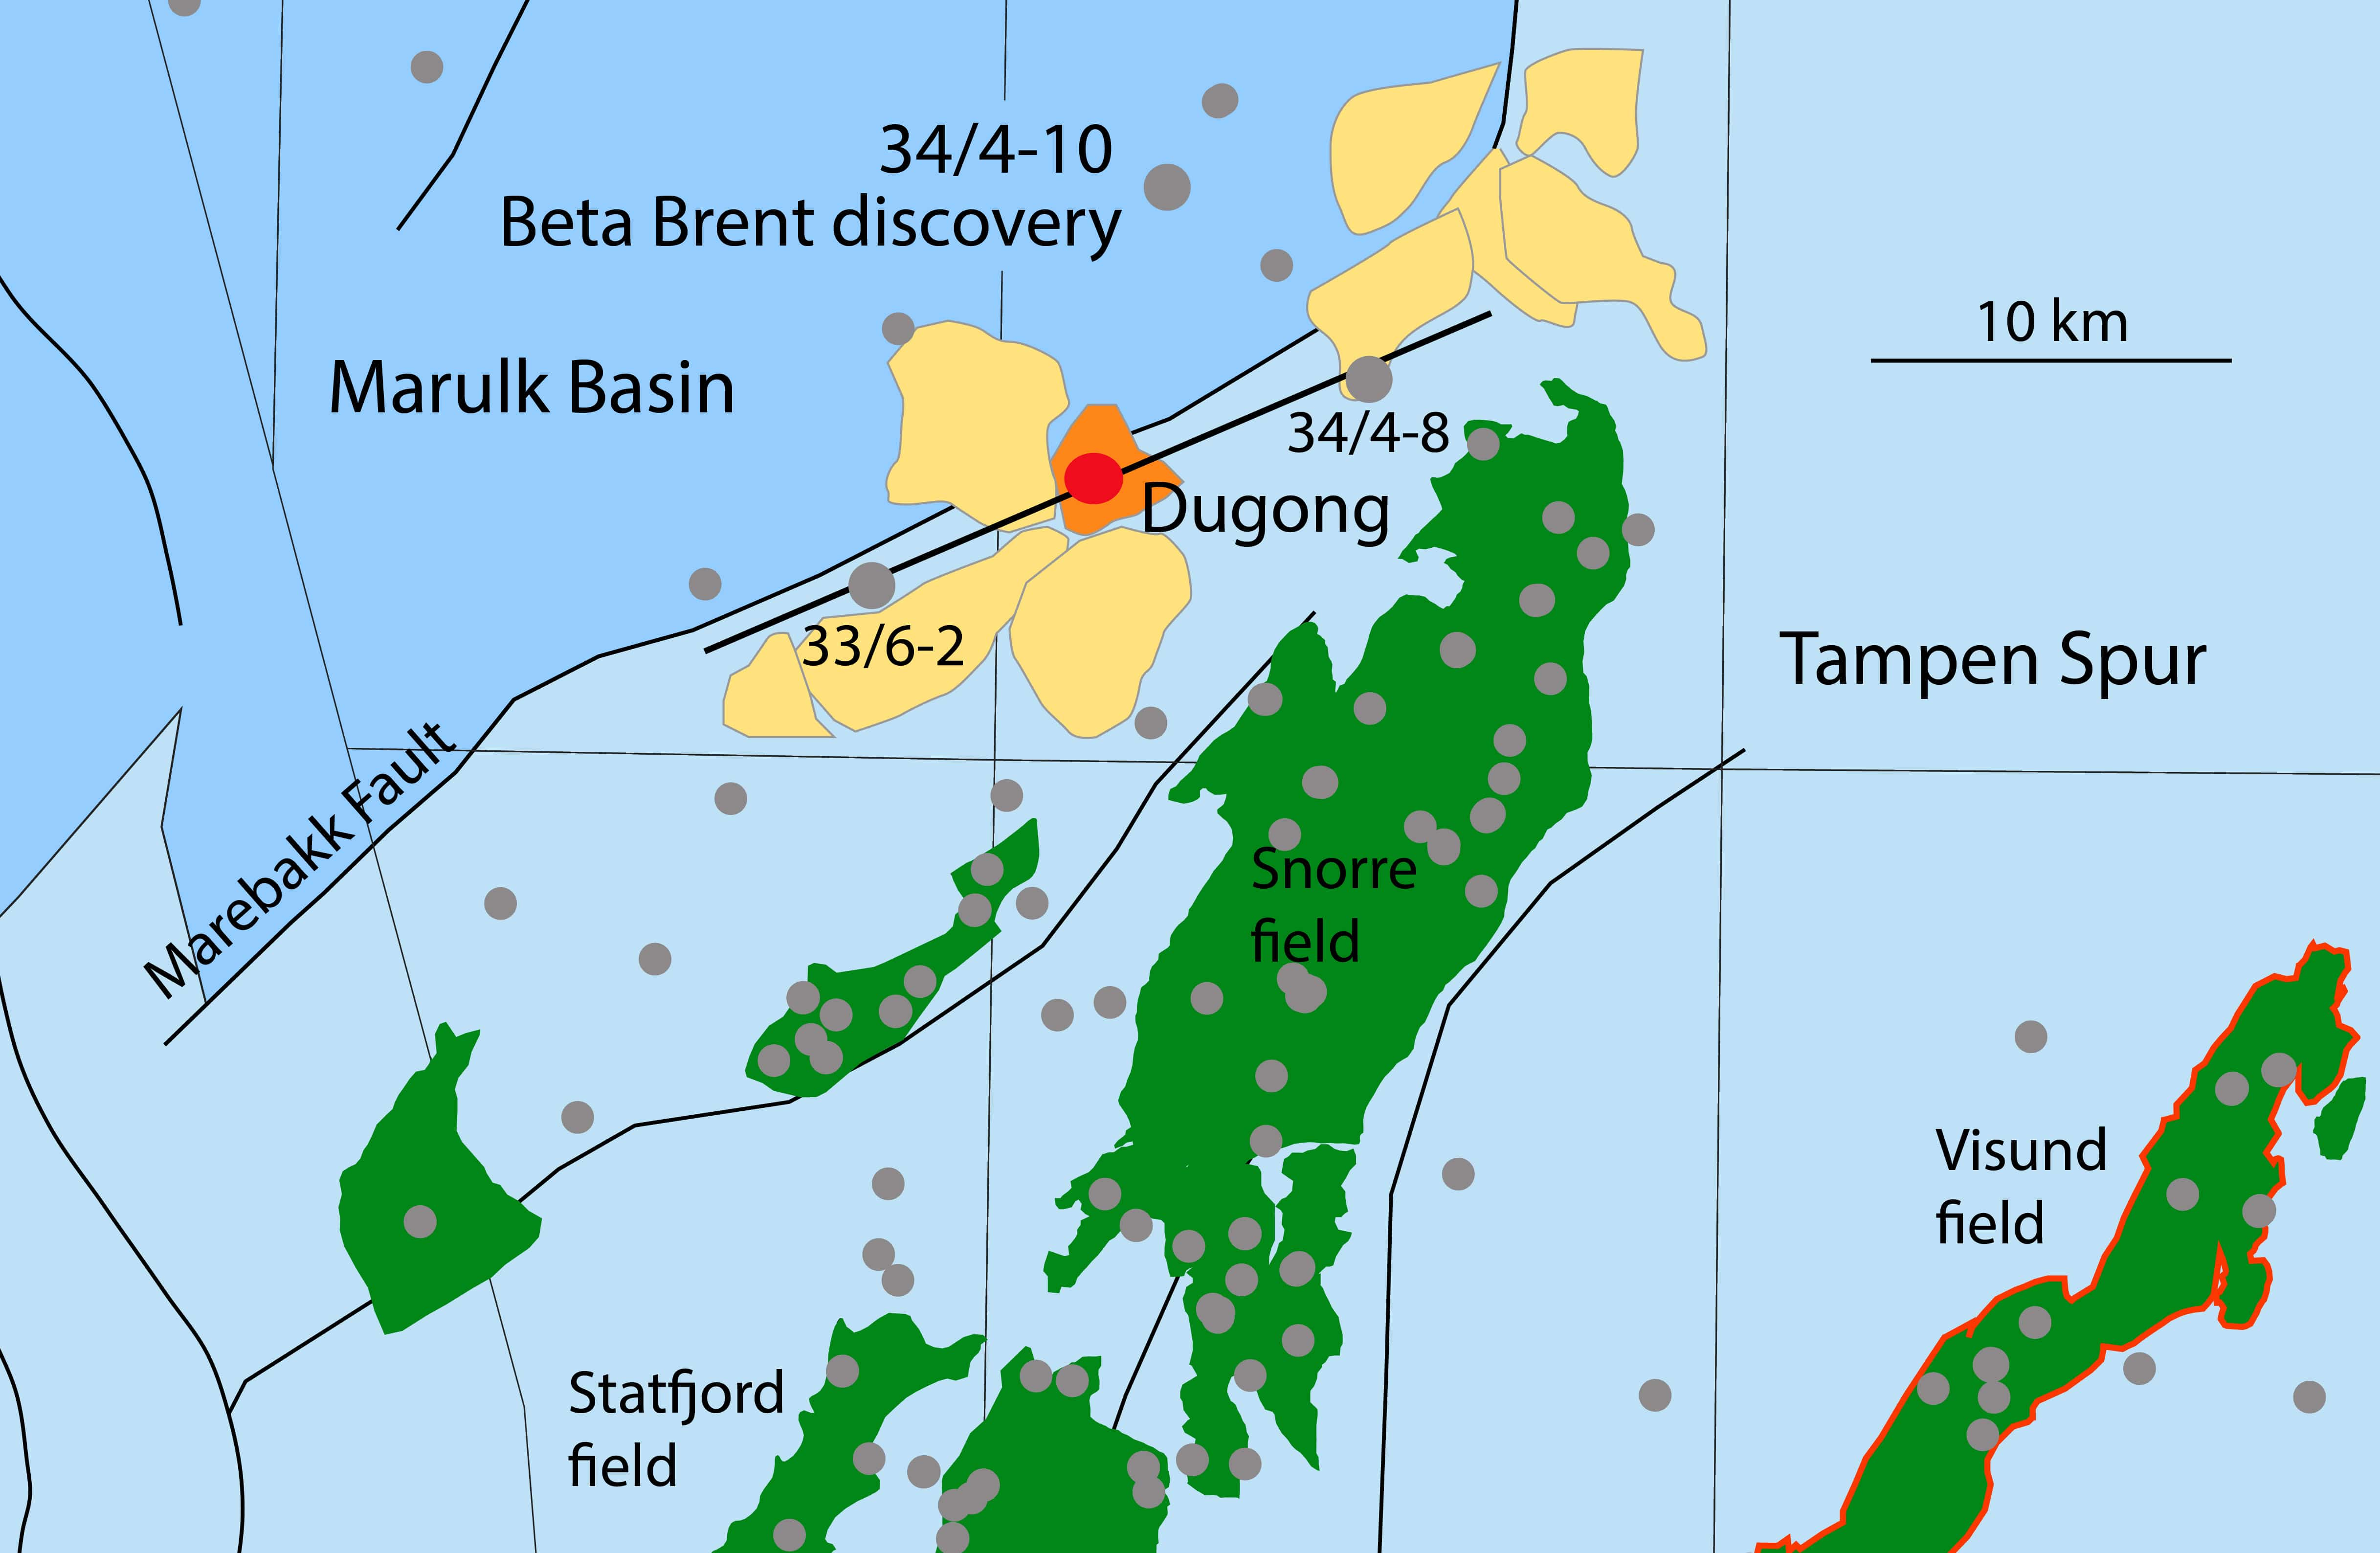 Dugong discovery confirmed